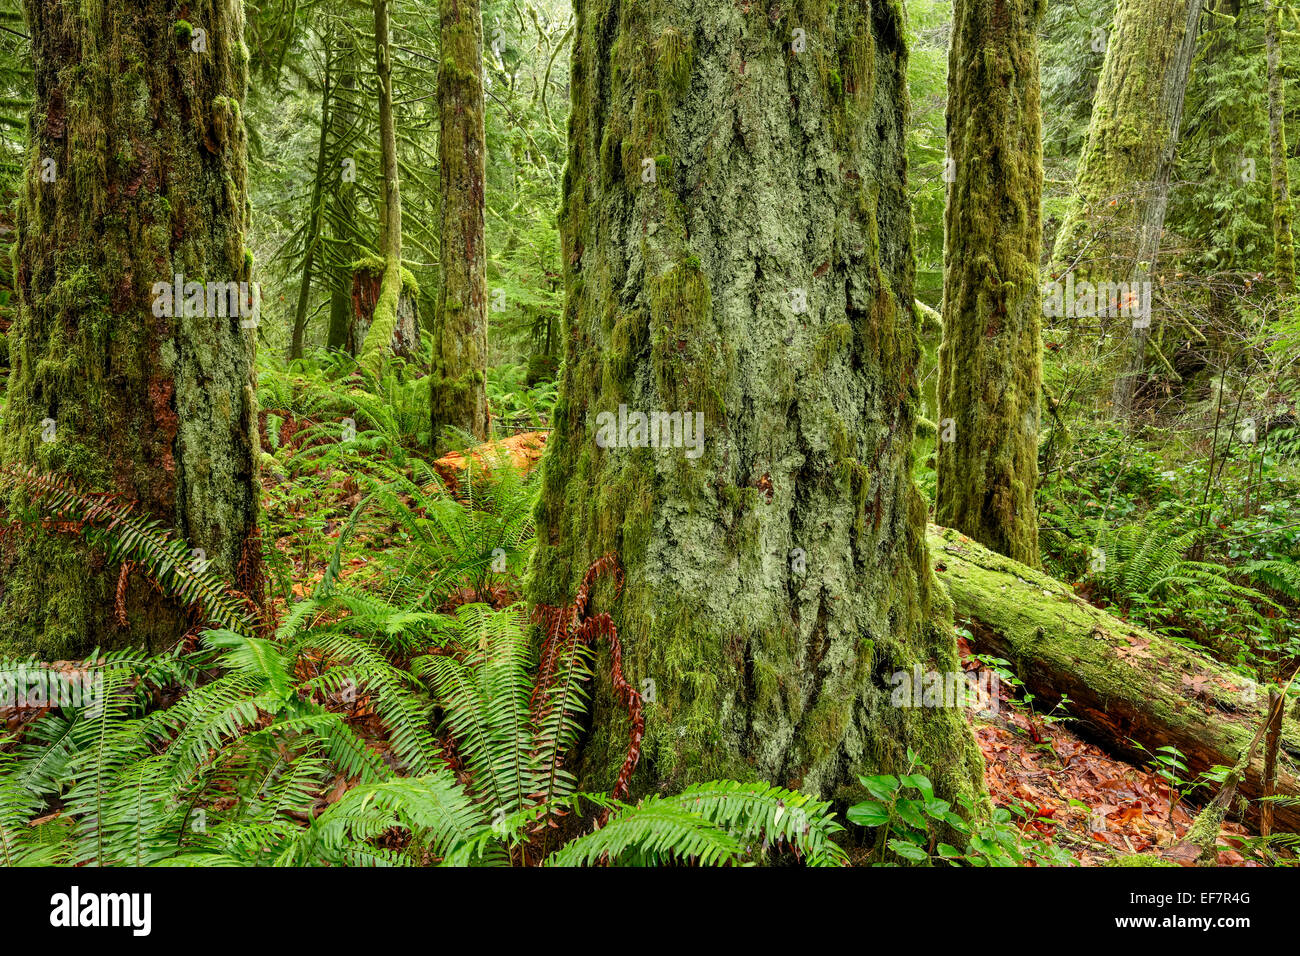 Old growth Douglas fir trees in Goldstream Provincial Park-Victoria British Columbia, Canada. - Stock Image